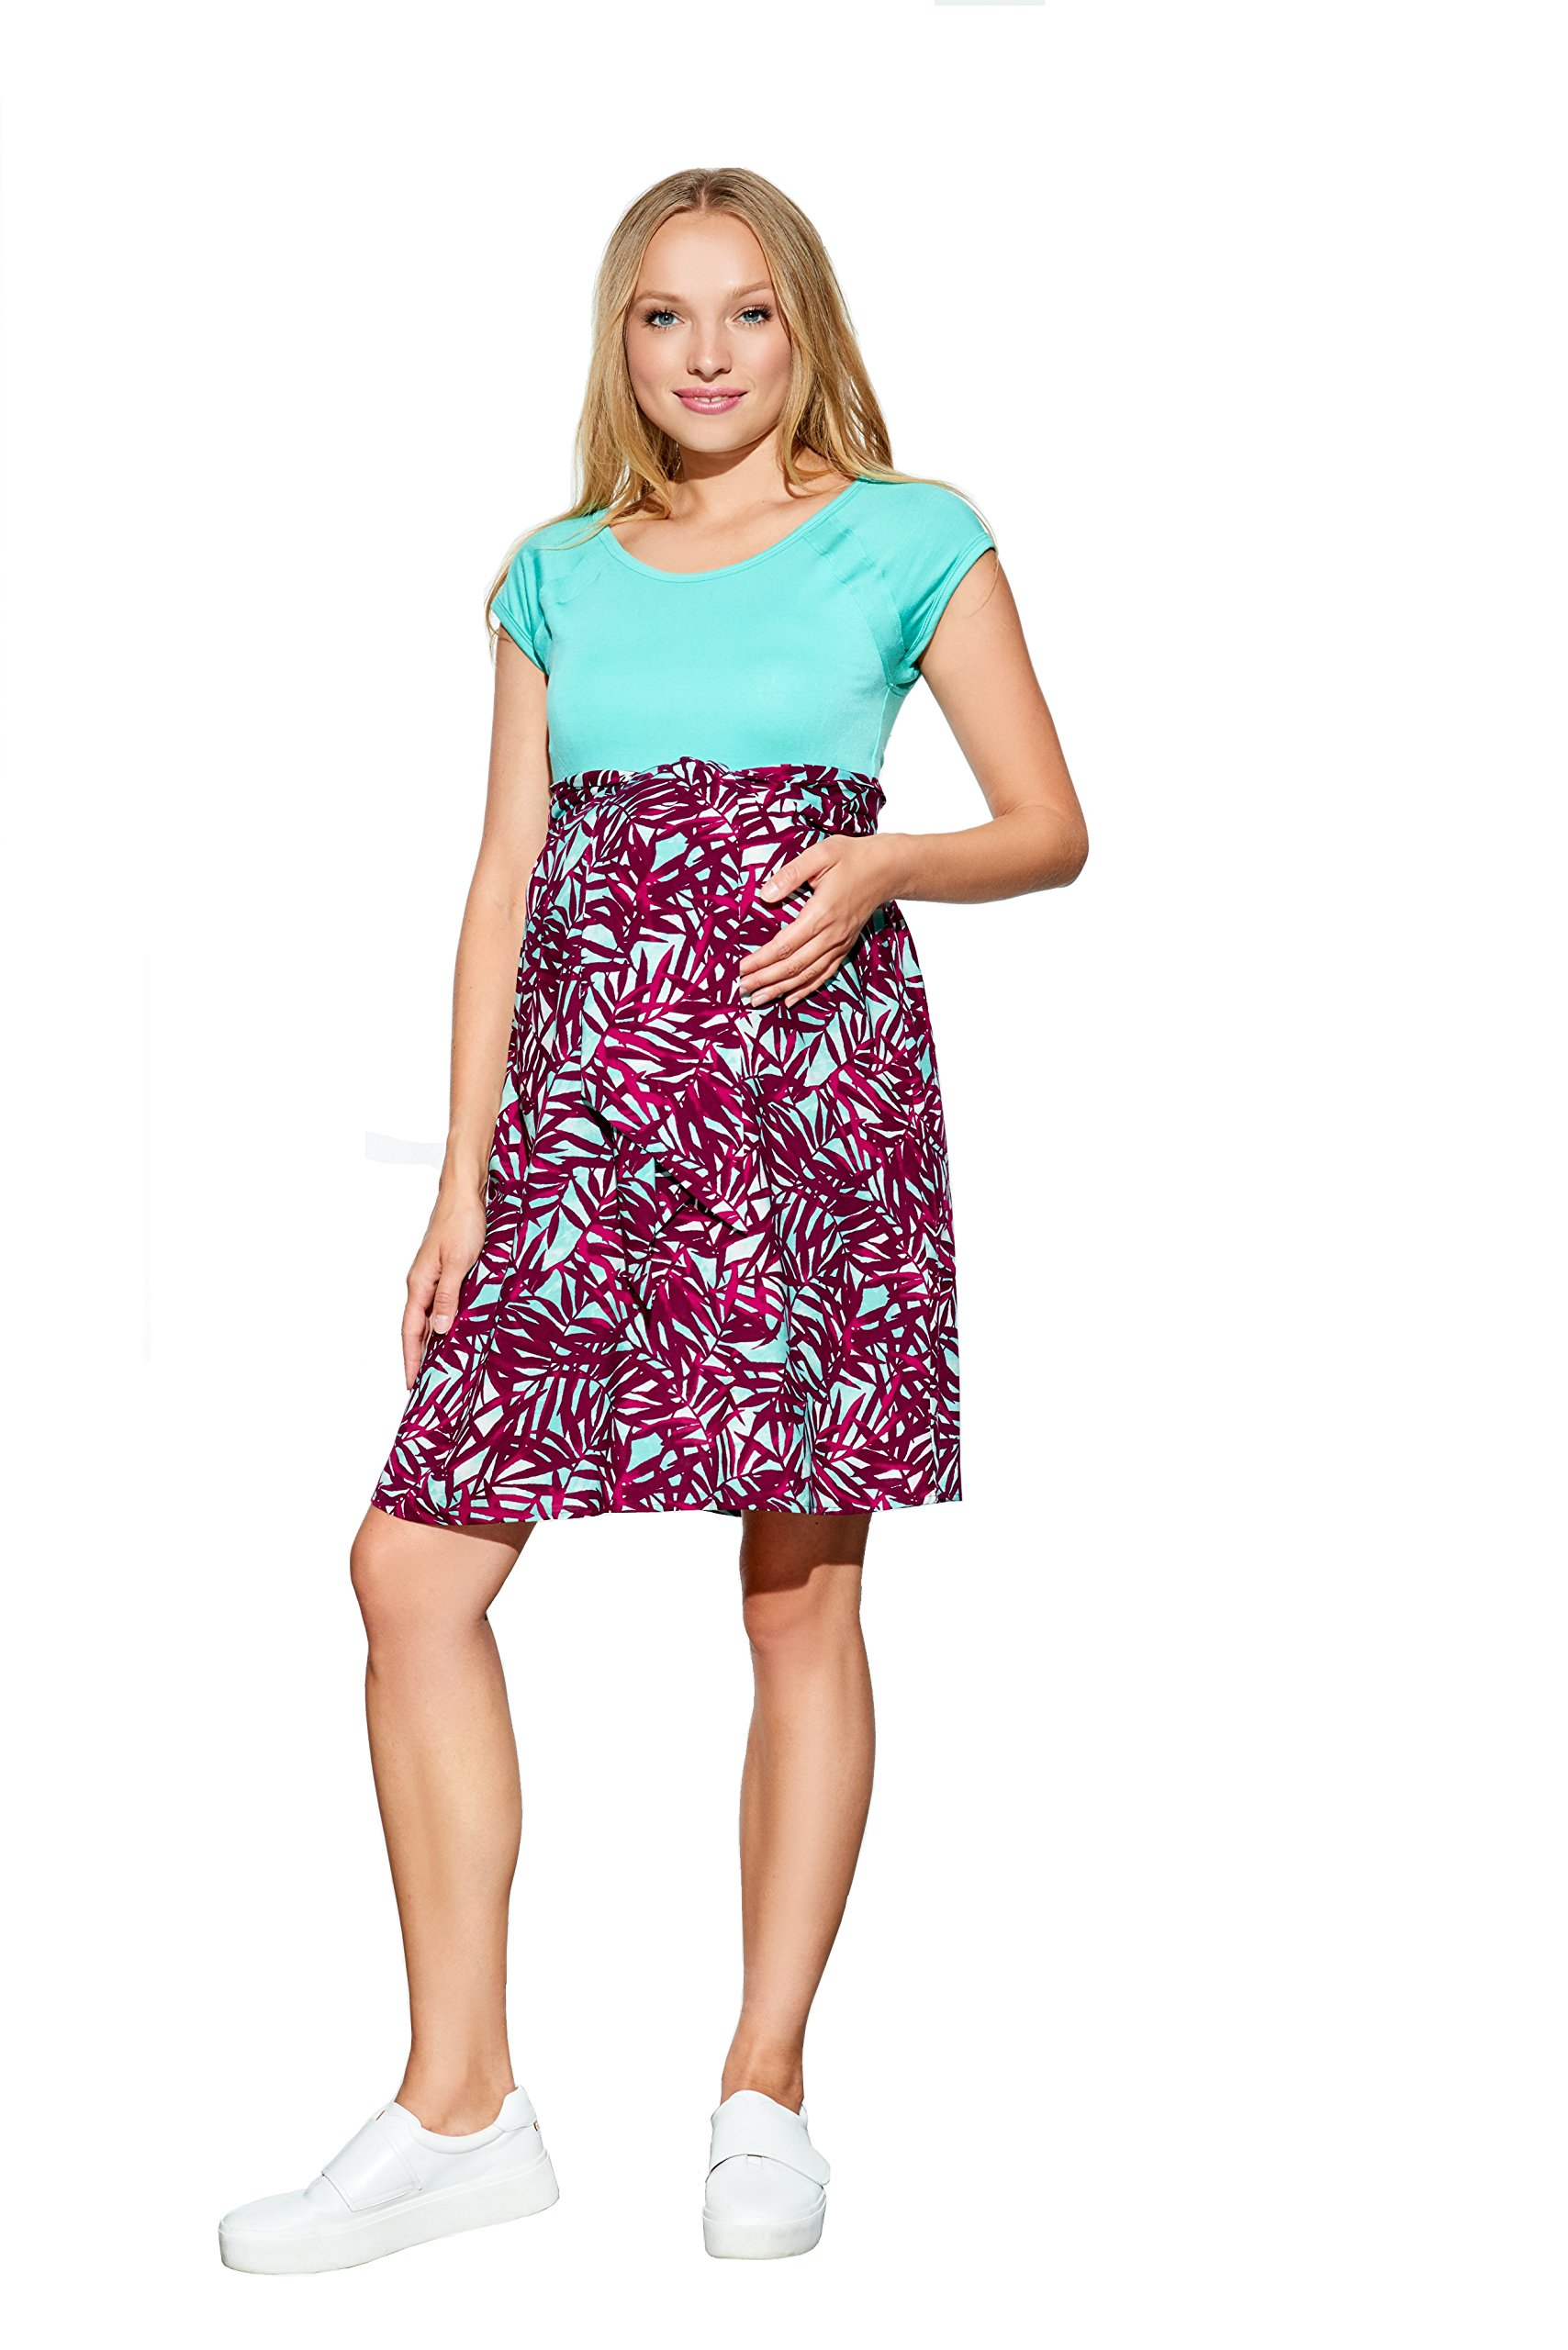 Maternal America Women's Maternity Front Tie Dress (X-Small, MINT/MAGENTA TROPICS)